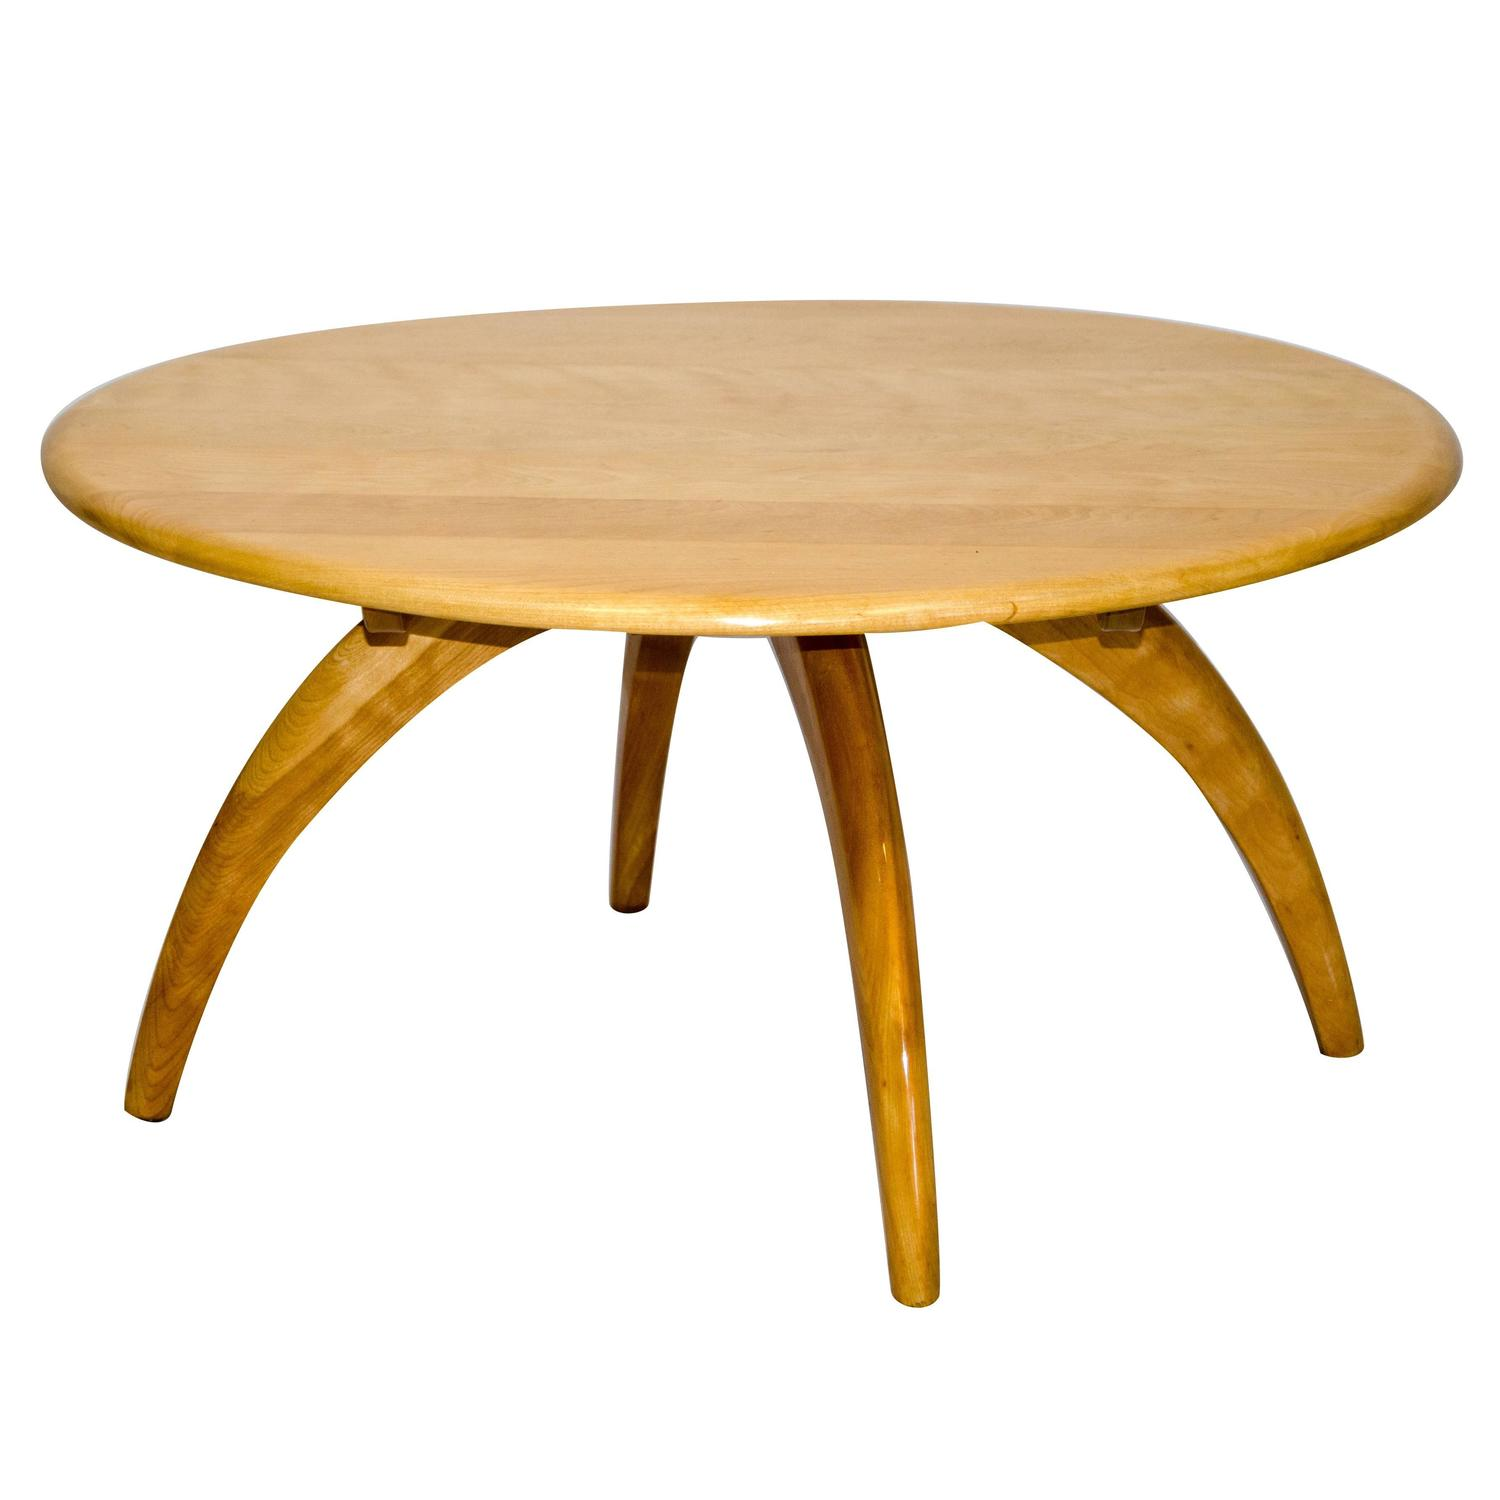 Round Lazy Susan Cocktail Or Coffee Table By Heywood Wakefield For Sale At 1stdibs